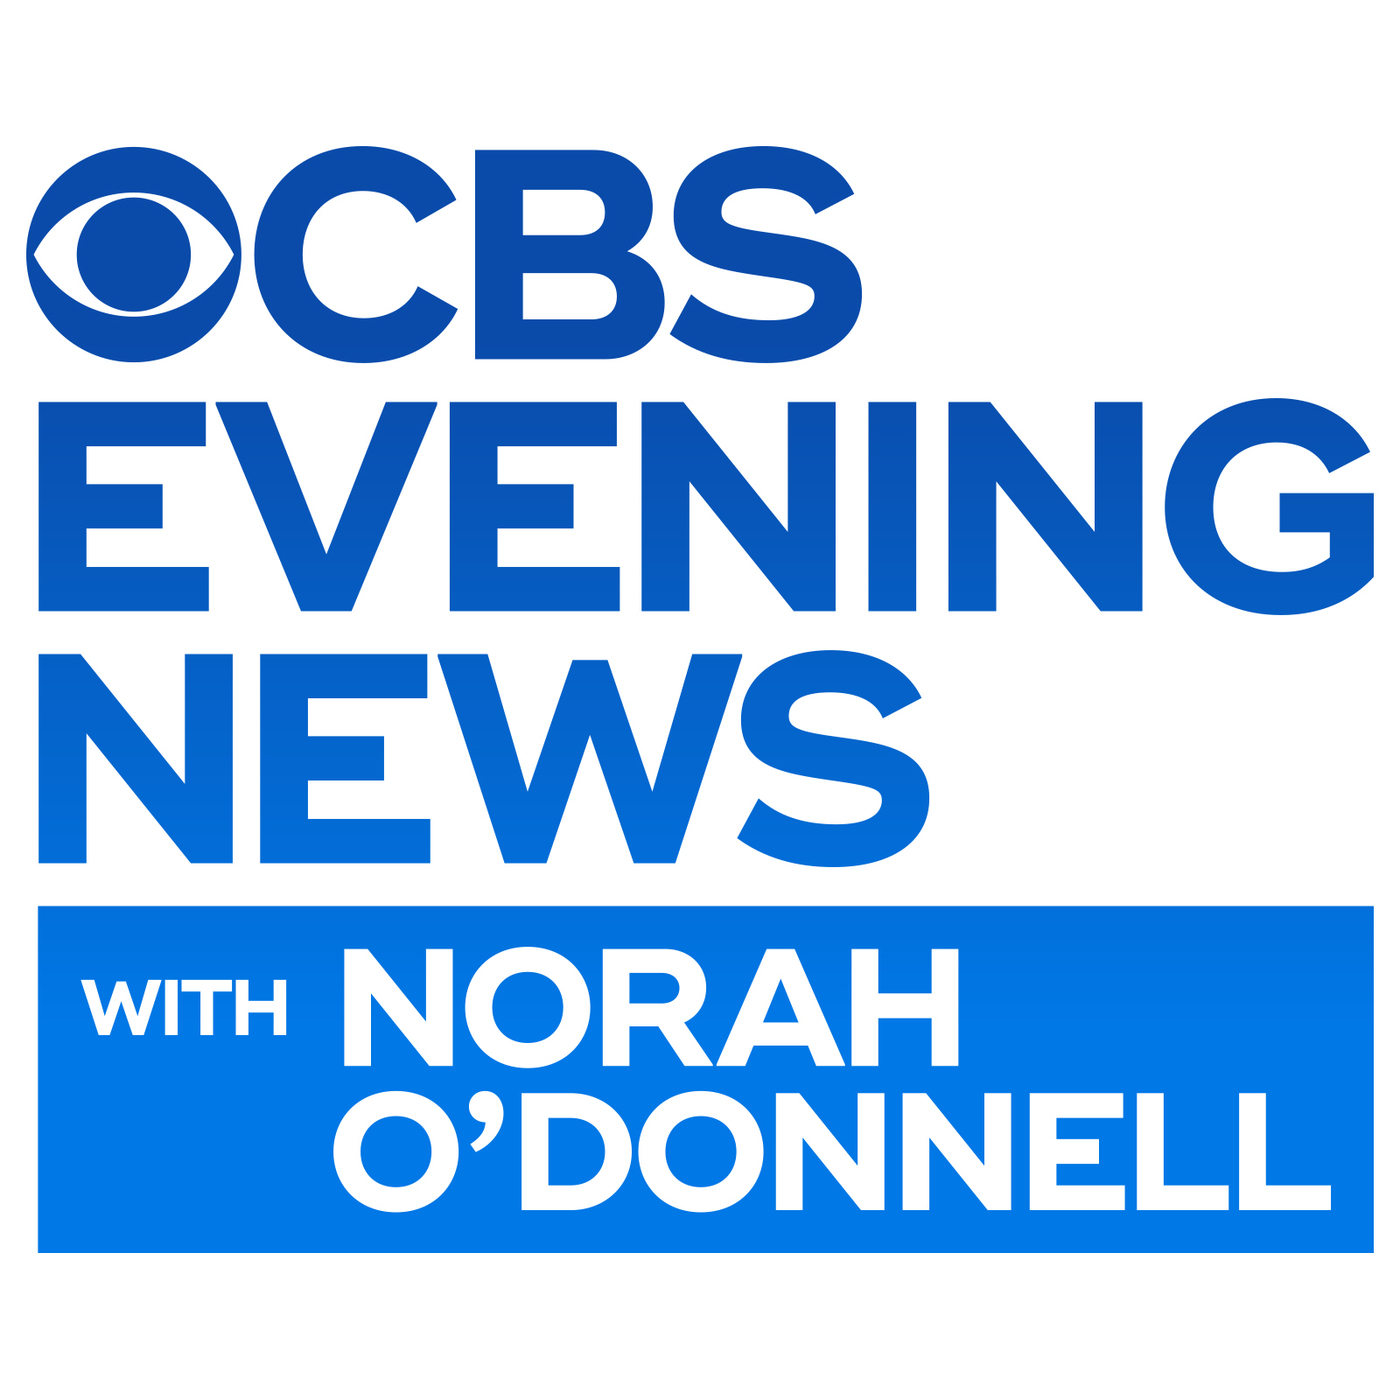 CBS Evening News with Norah O'Donnell, 04/06